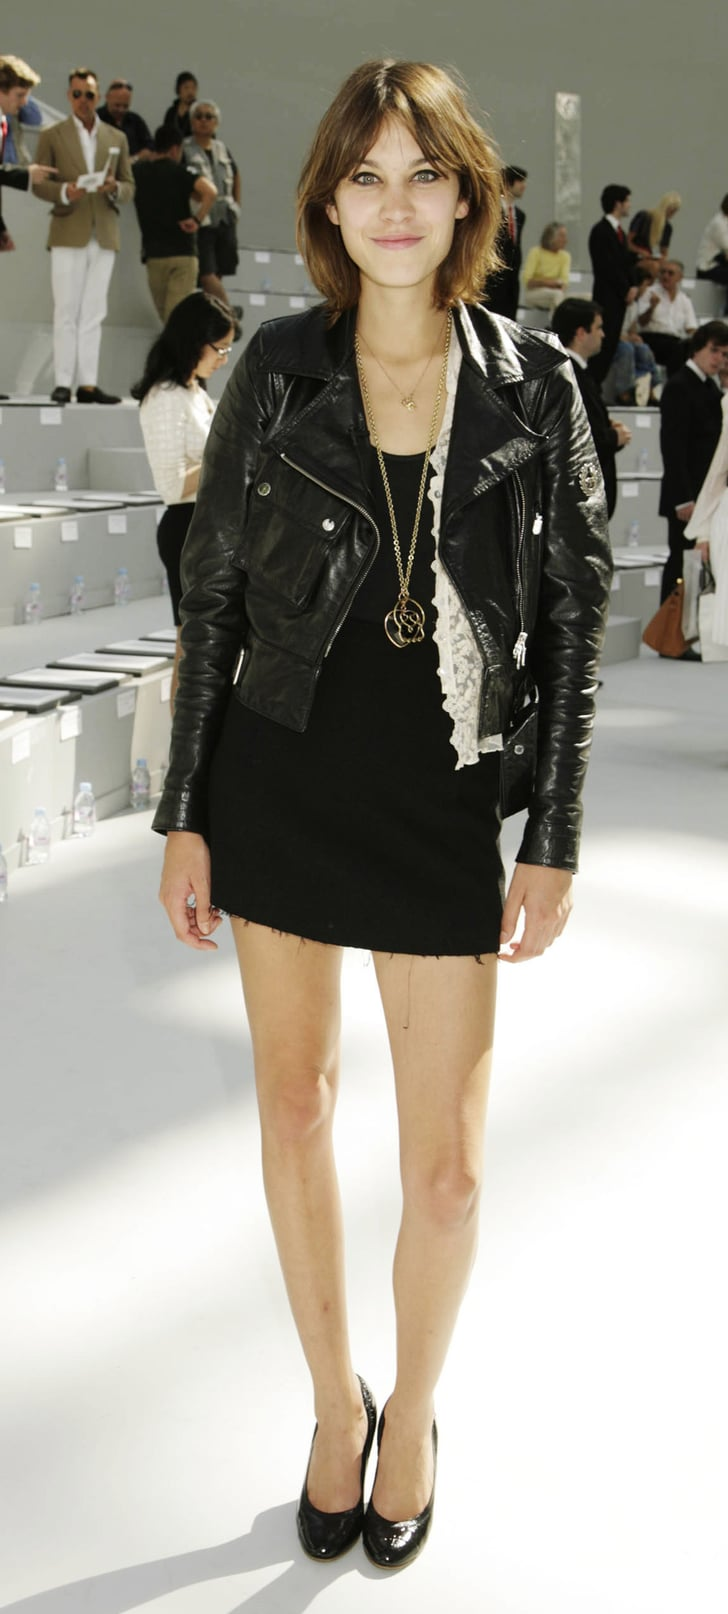 celeb style alexa chung at chanel couture show popsugar fashion uk. Black Bedroom Furniture Sets. Home Design Ideas